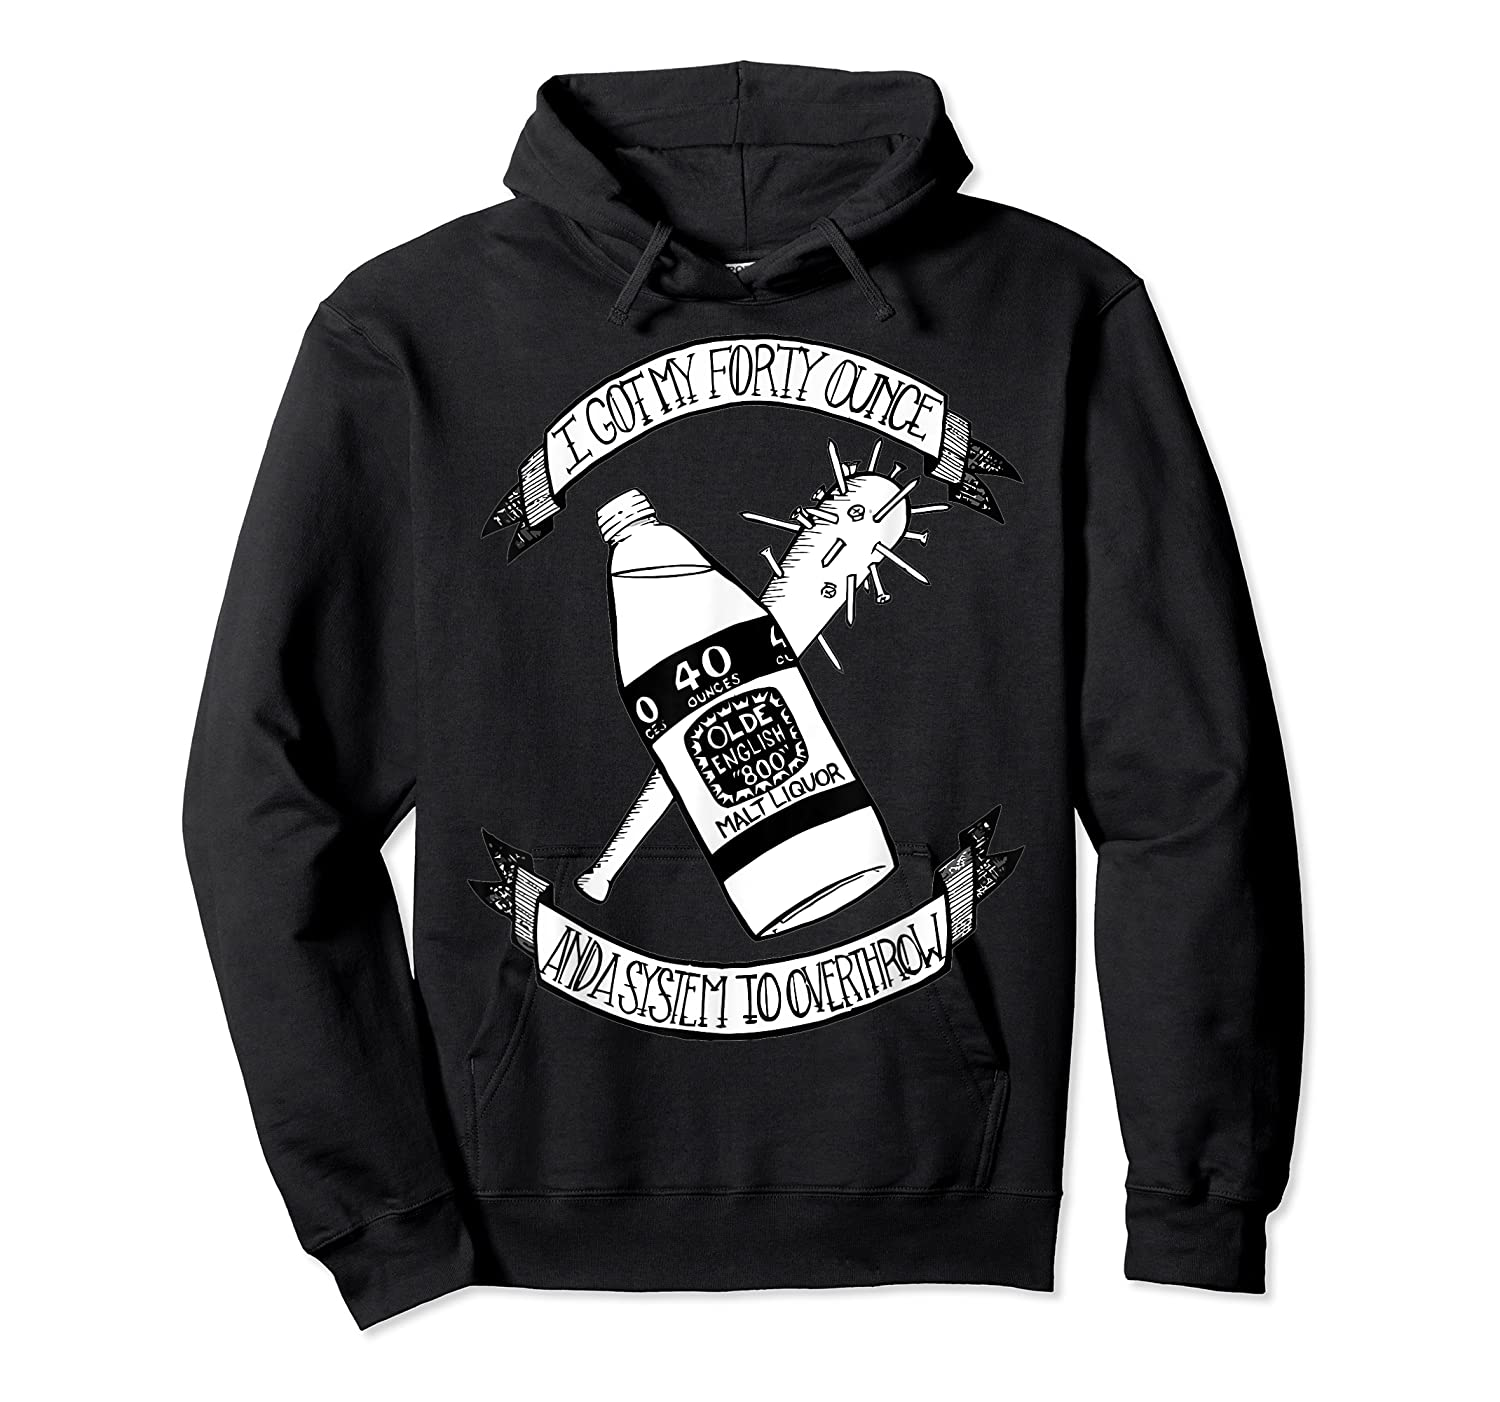 Got My 40 Oz And A System To Overthrow Folk Punk Anarchy Shirts Unisex Pullover Hoodie